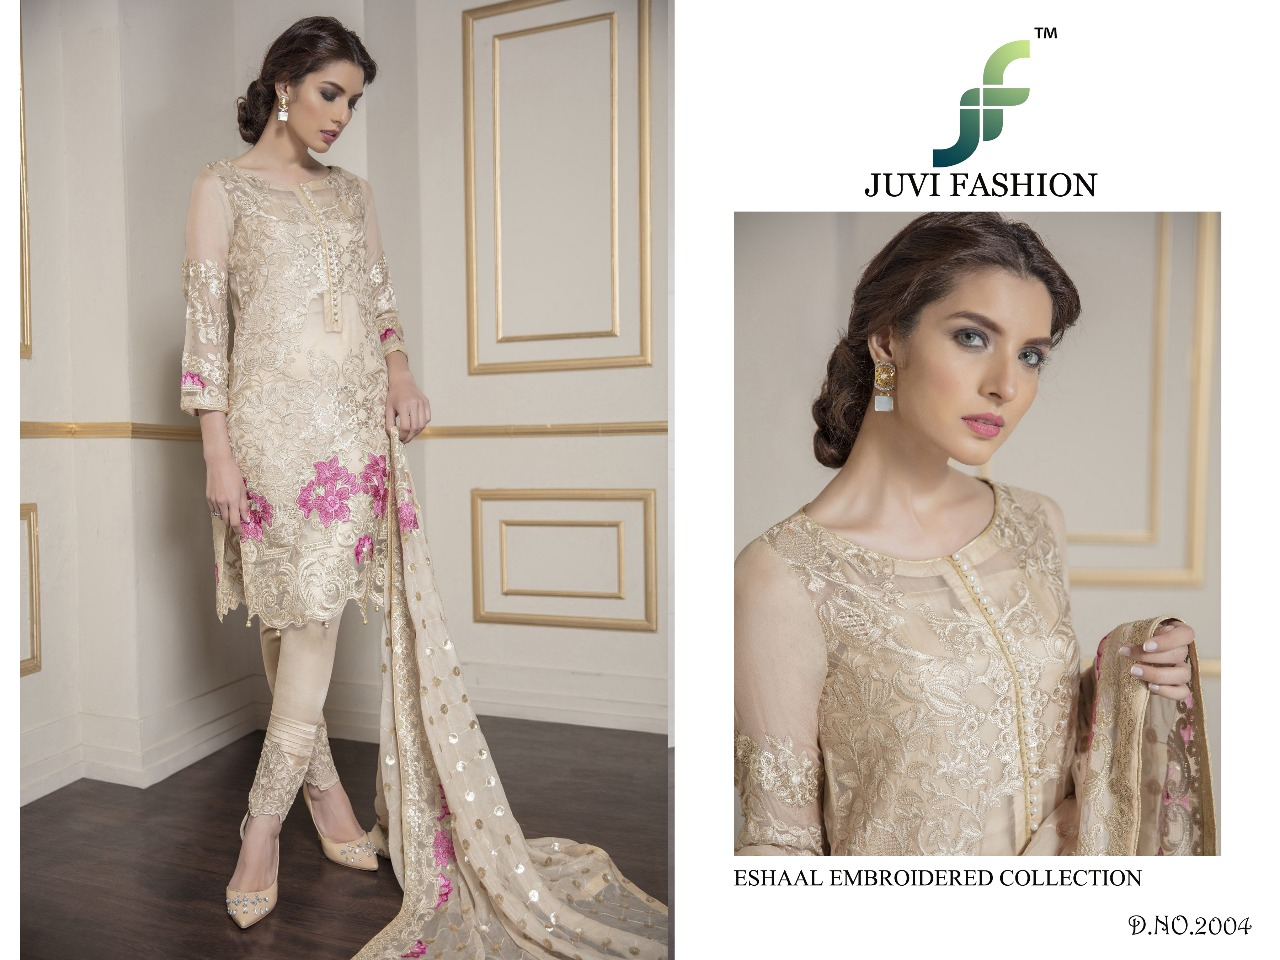 Juvi Fashion Eshaal Embroidered Collection 2004